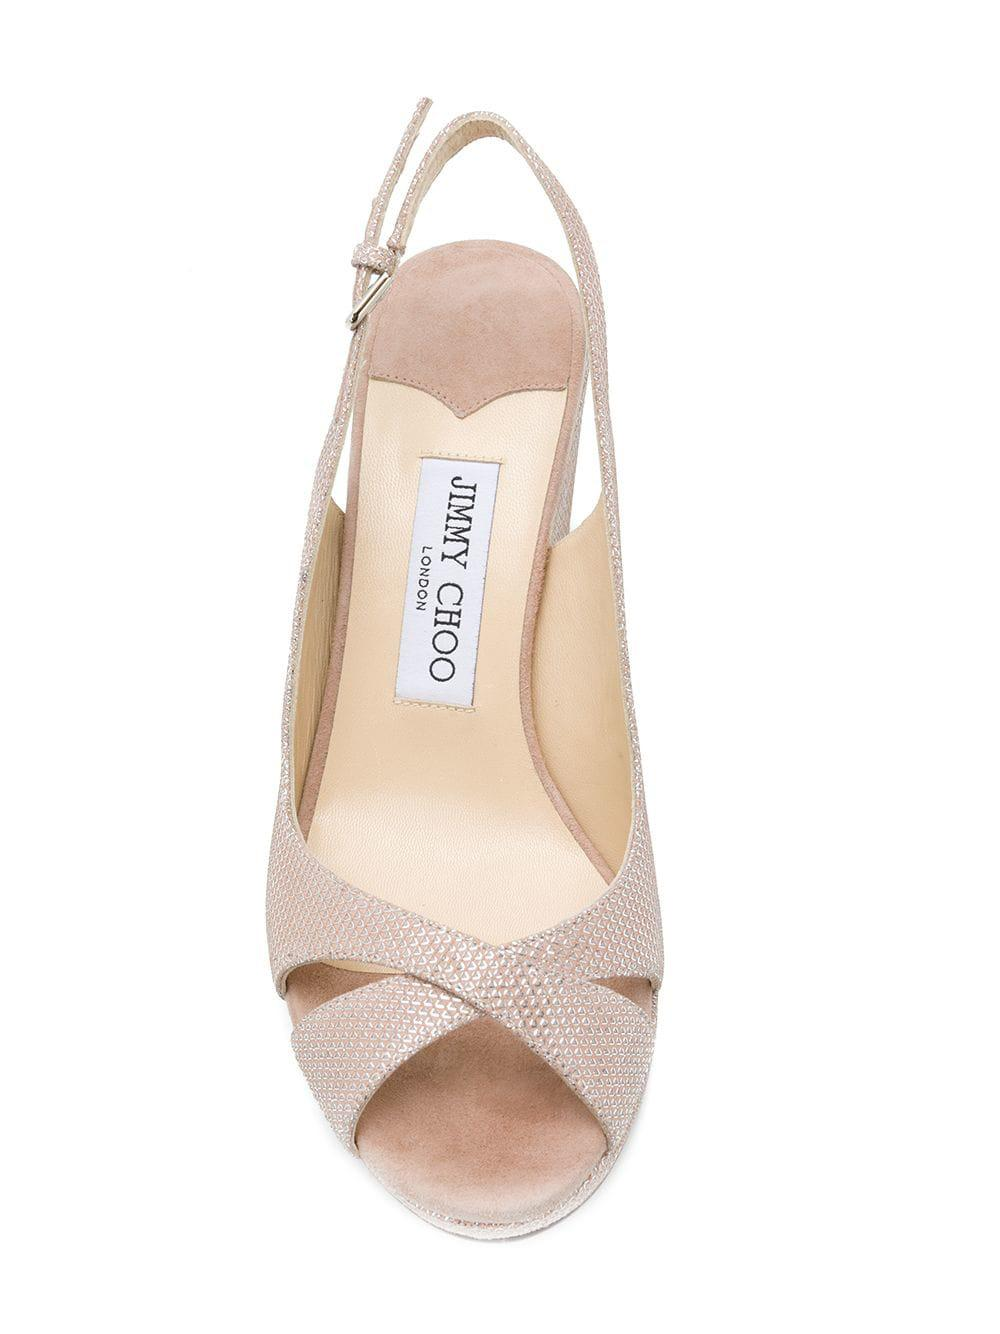 e240fc92cc0 Lyst - Jimmy Choo Amely 80 Sandals in Pink